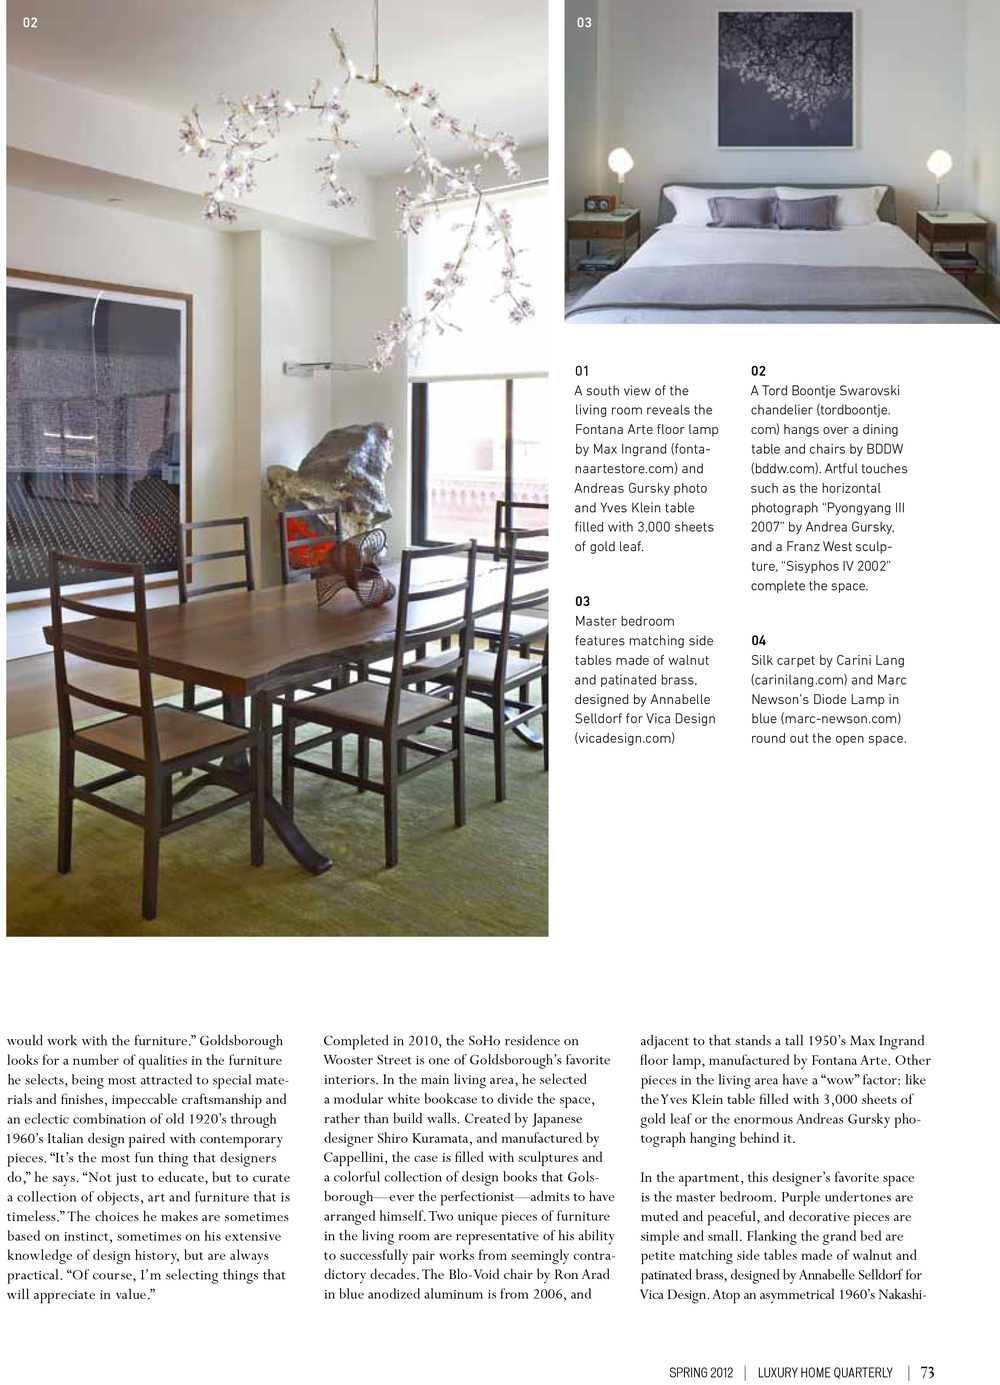 Luxury Home Quarterly.pdf-3.jpg